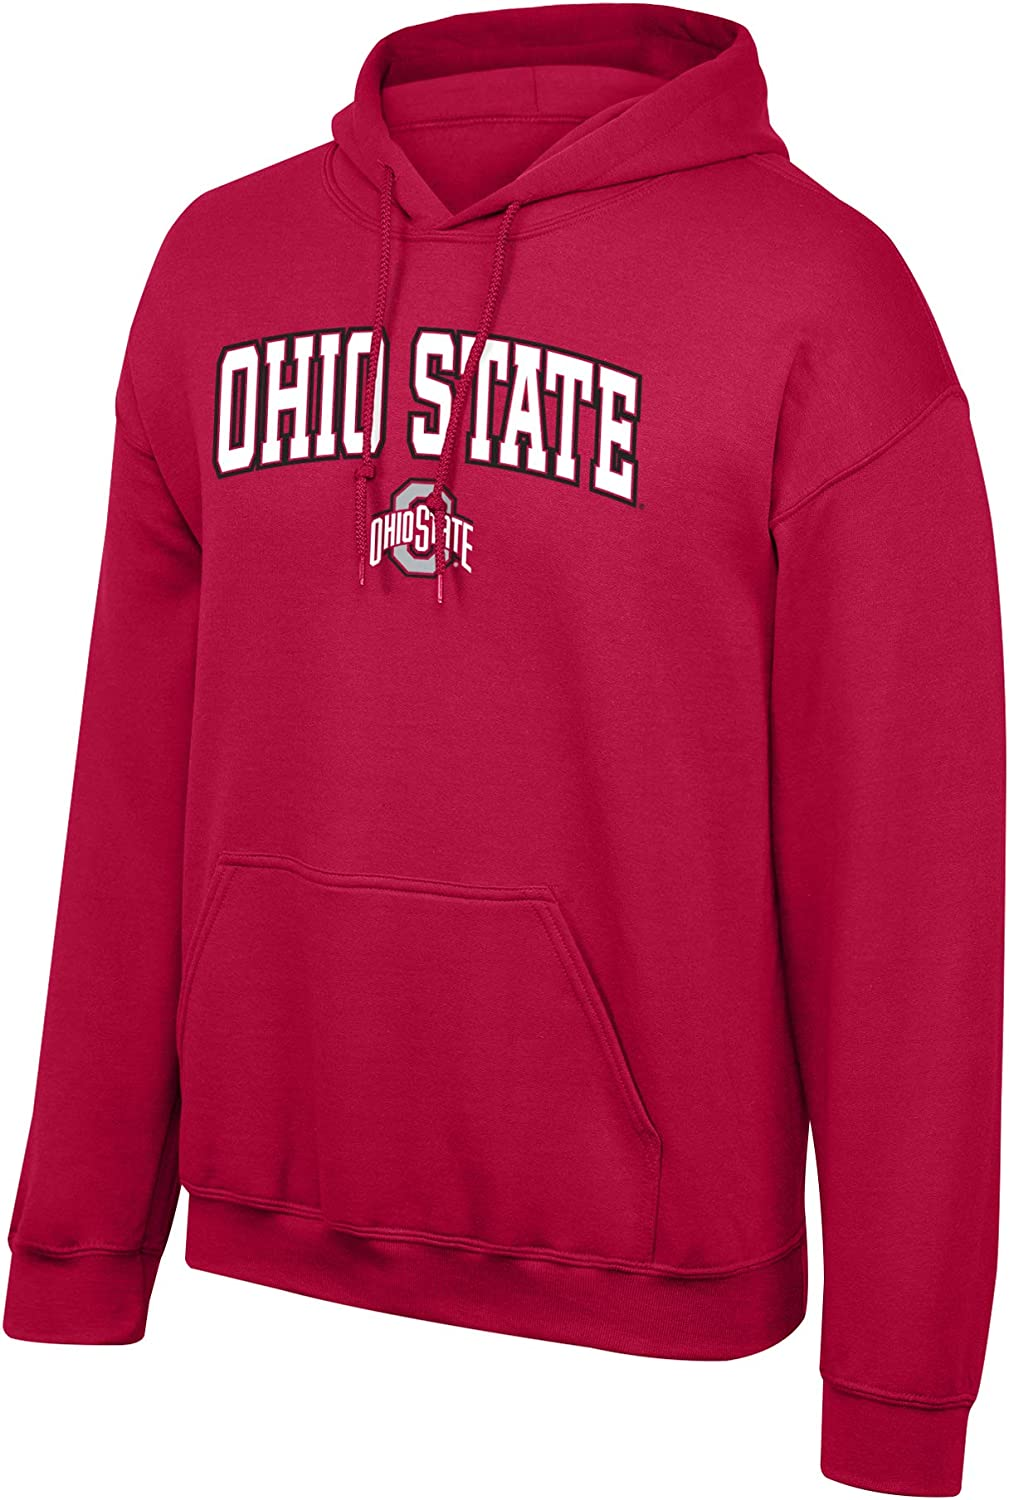 Elite Fan Shop Fan Favorite Team Color Arch Hoodie Sweatshirt : Clothing